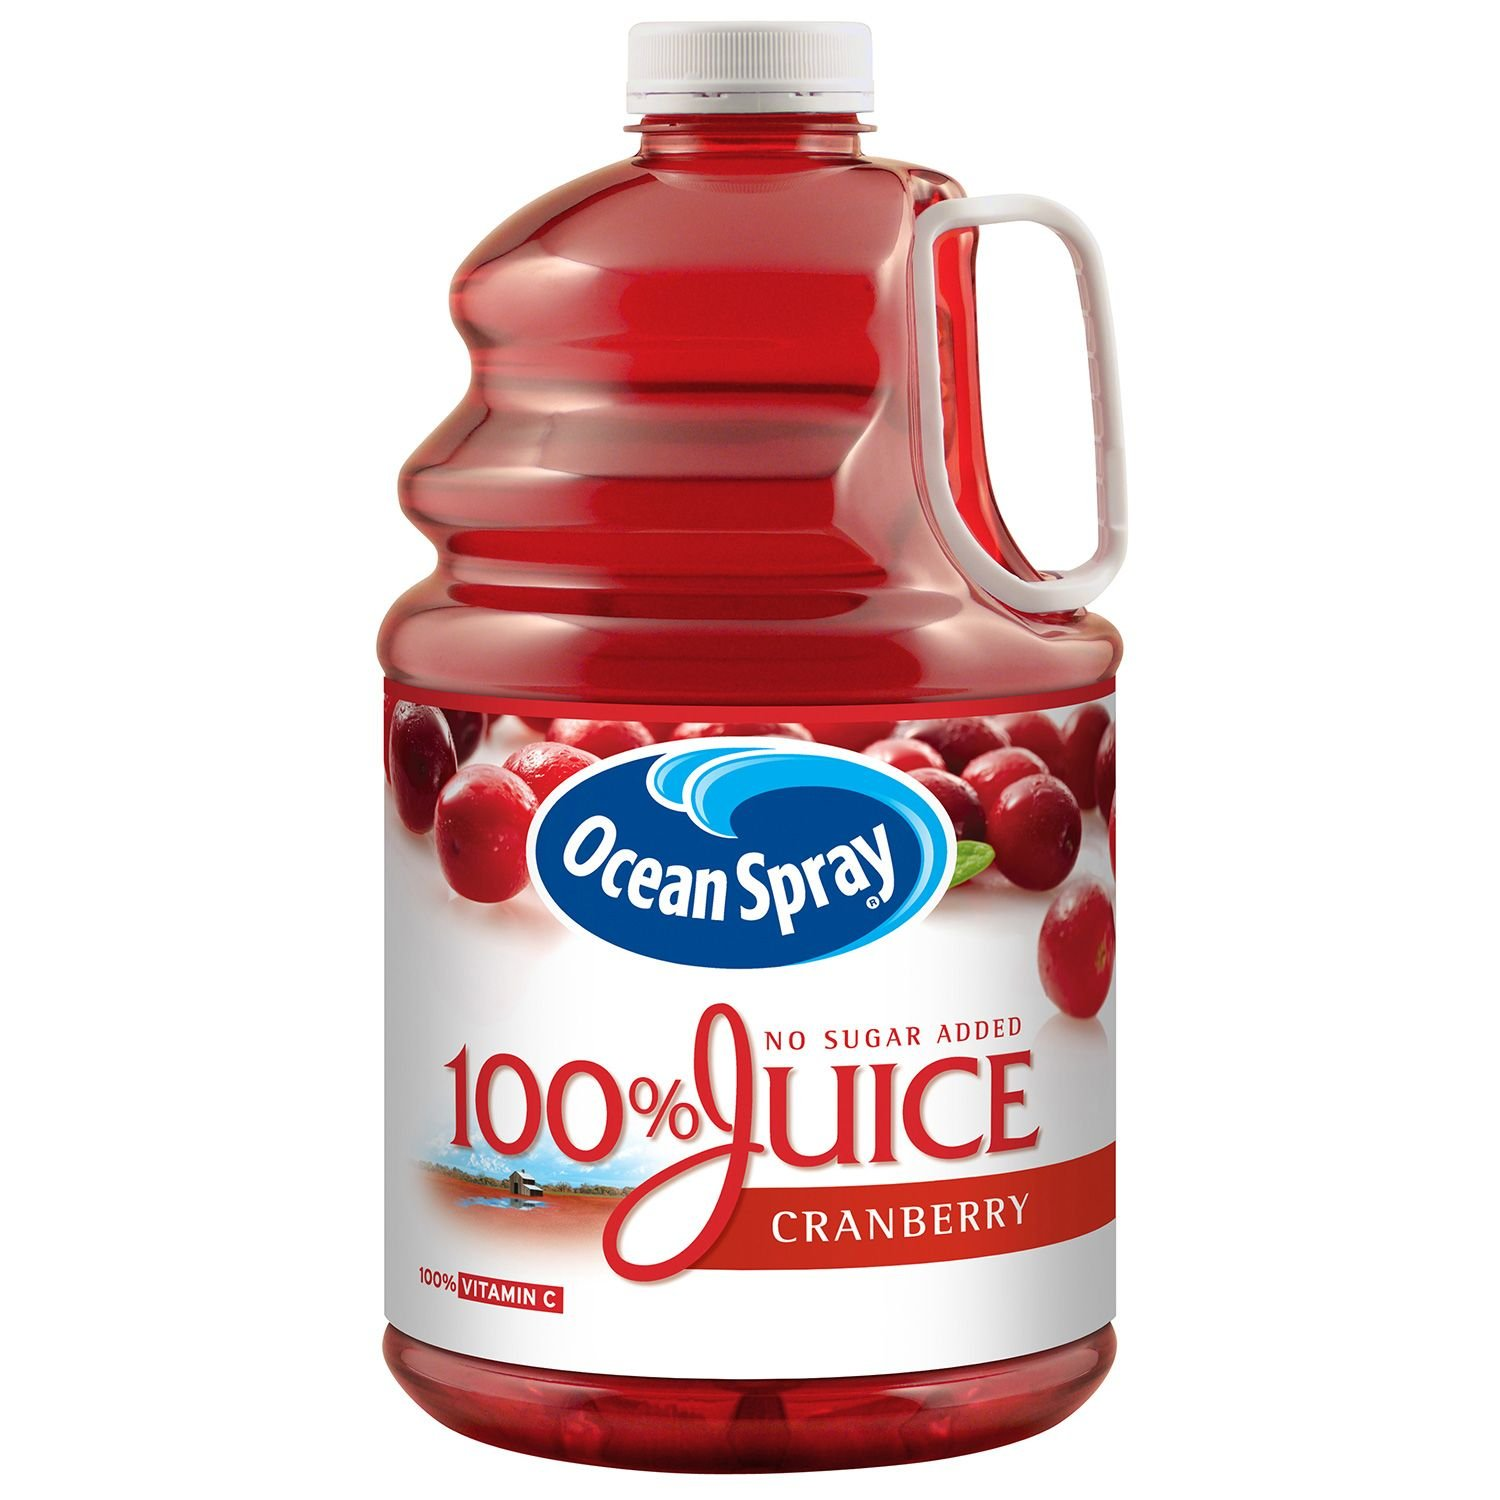 Ocean Spray 100% Juice - Cranberry Flavor - 1 gallon by Ocean Spray